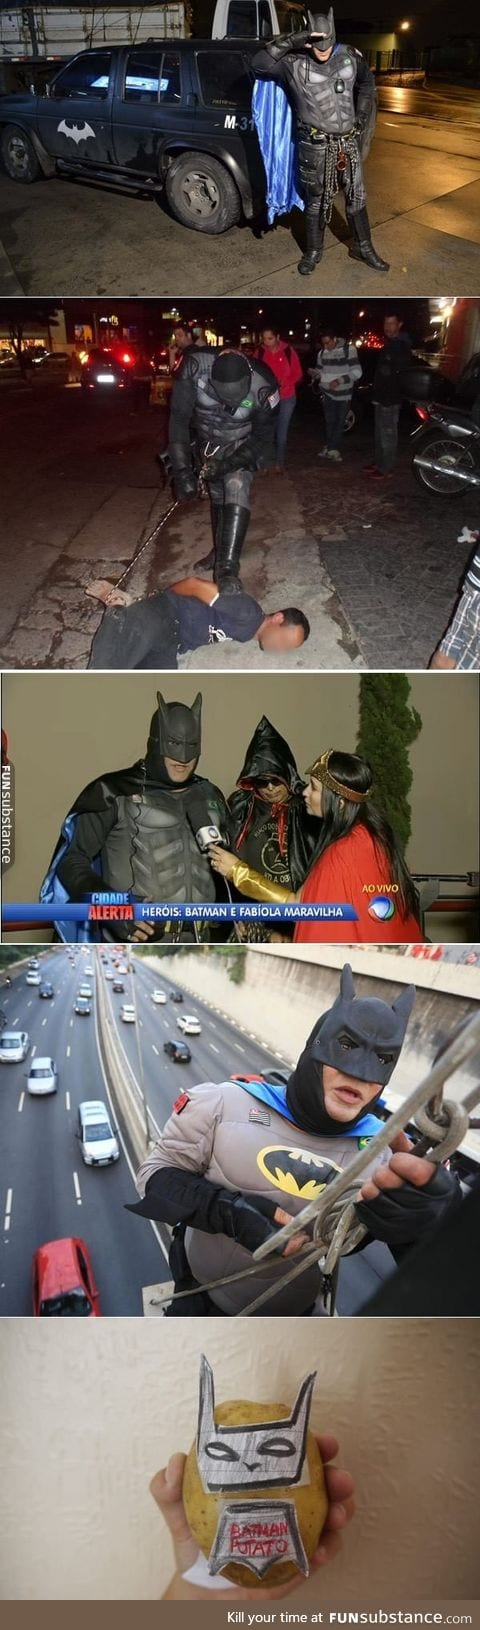 A retired police officer who fights crime during the night by himself is a real Batman